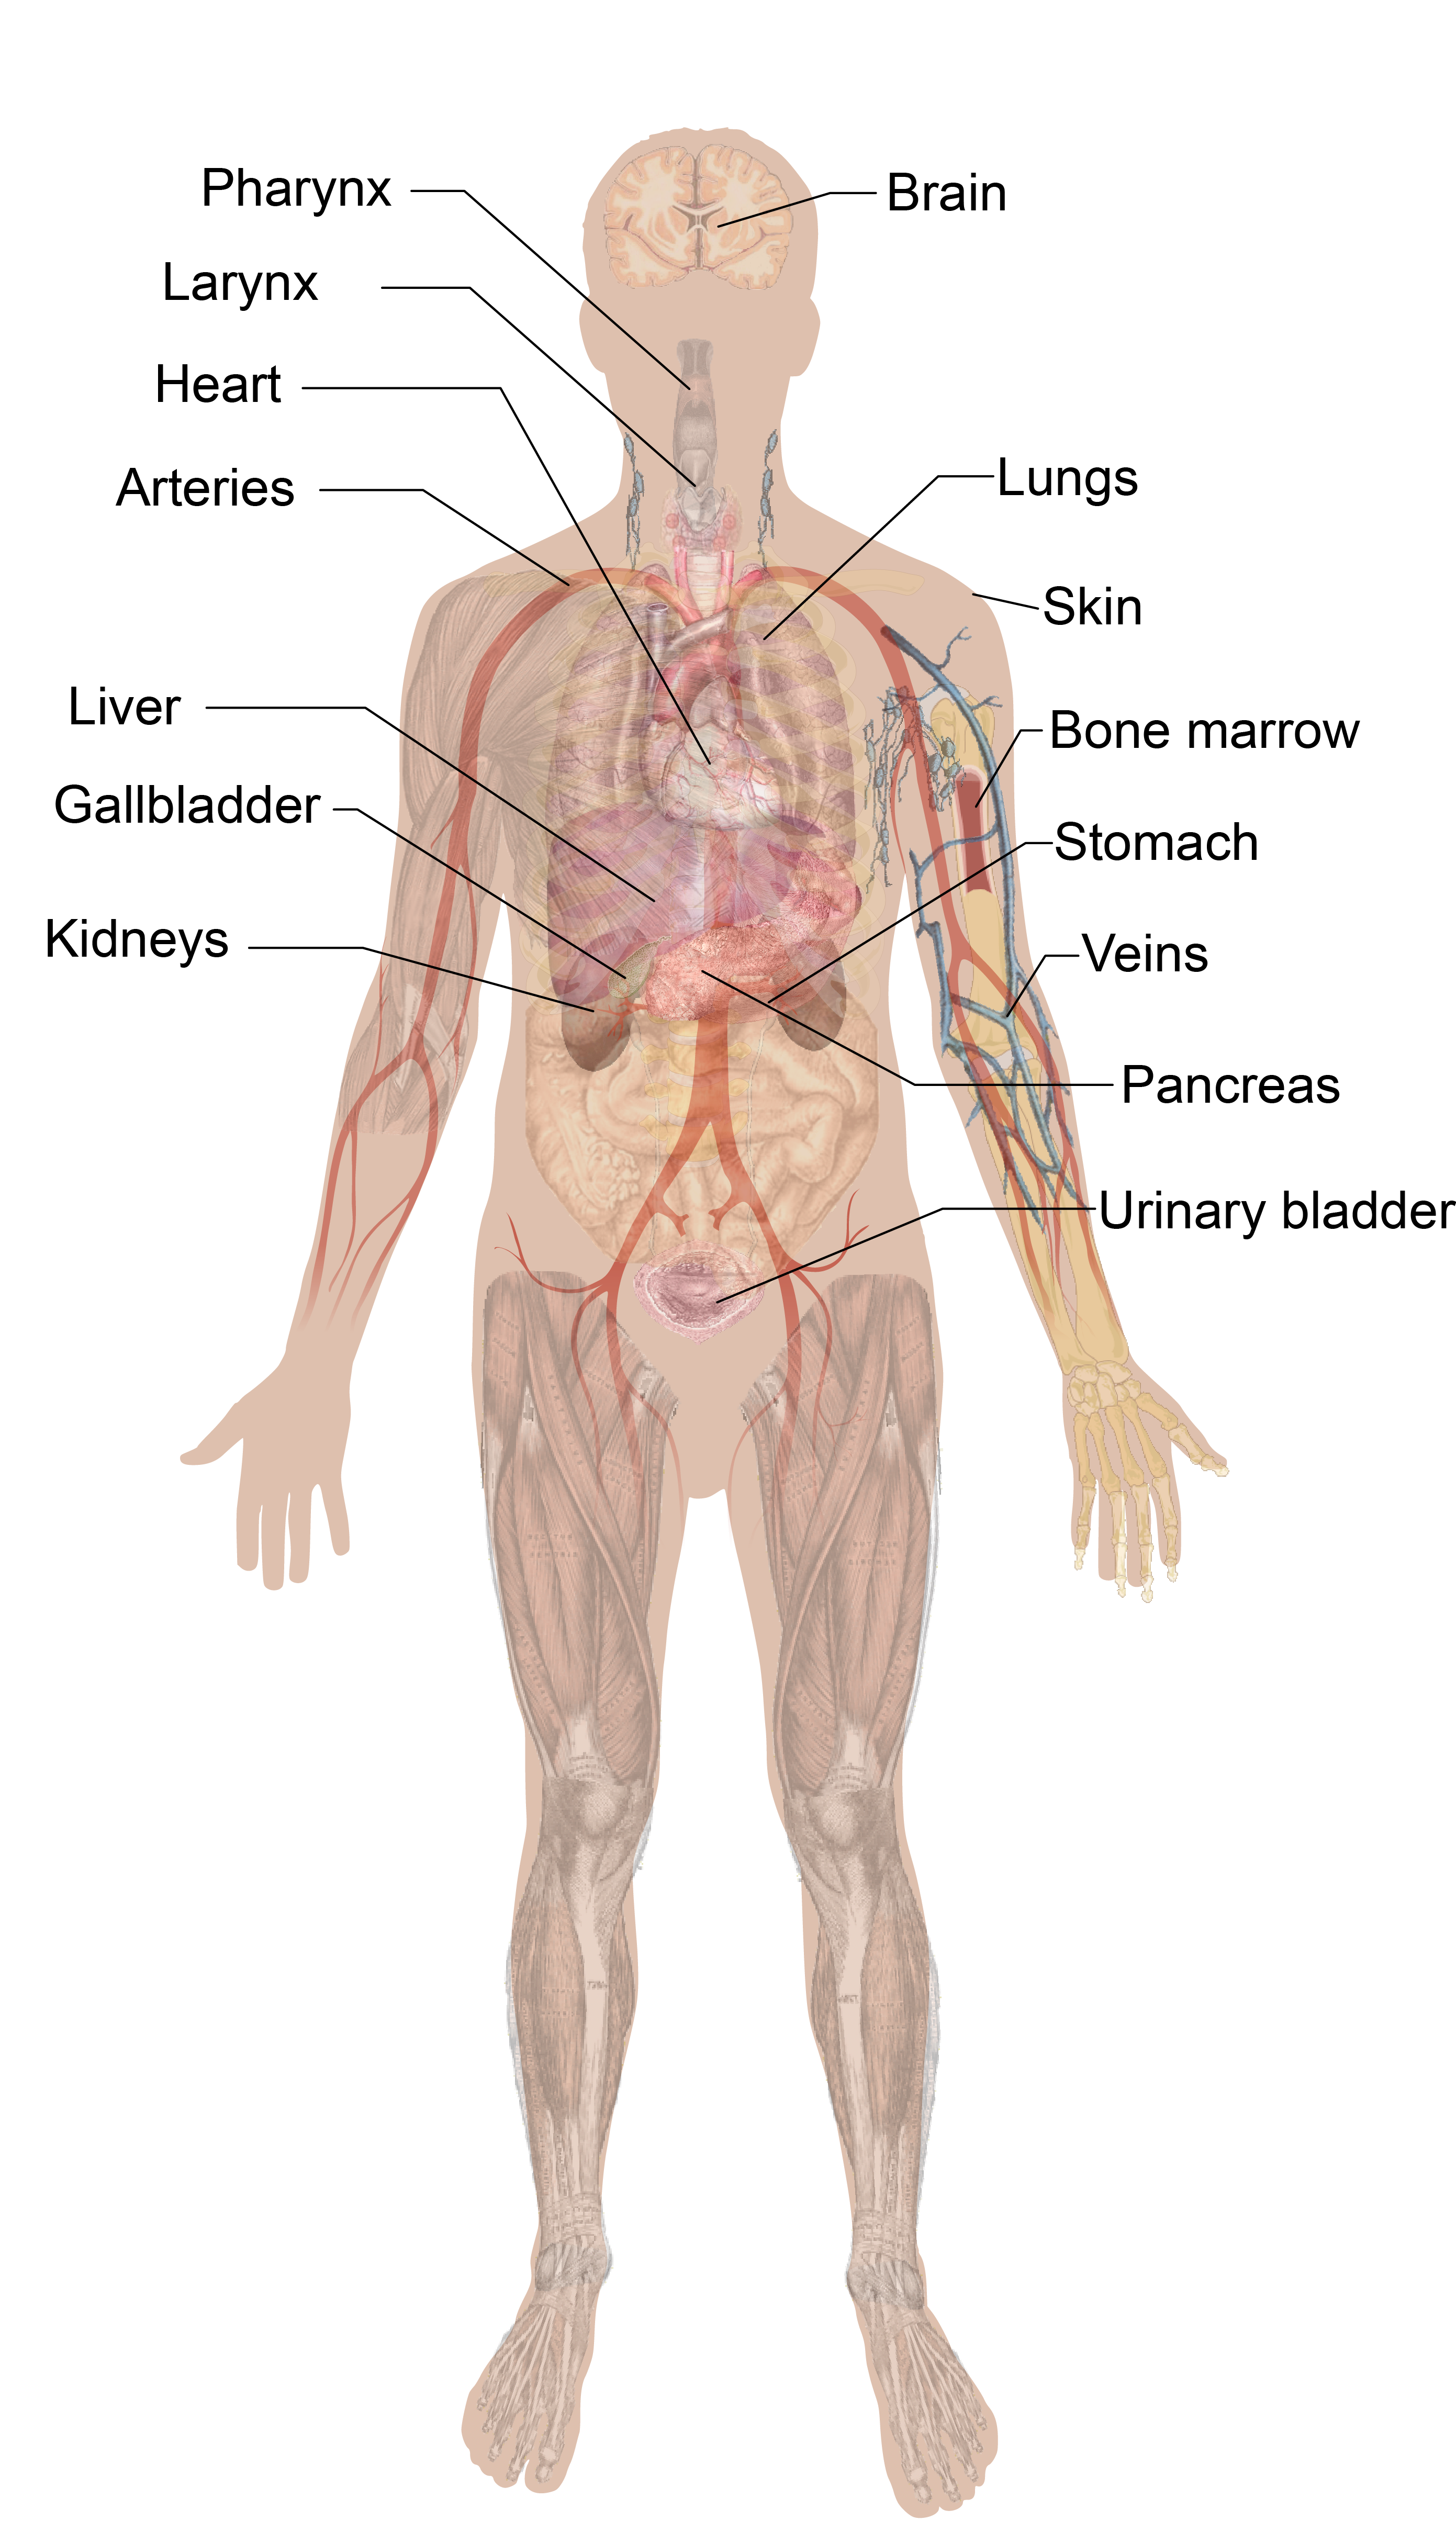 Transparent Muscles Body Diagram Transparent Png Clipart Free